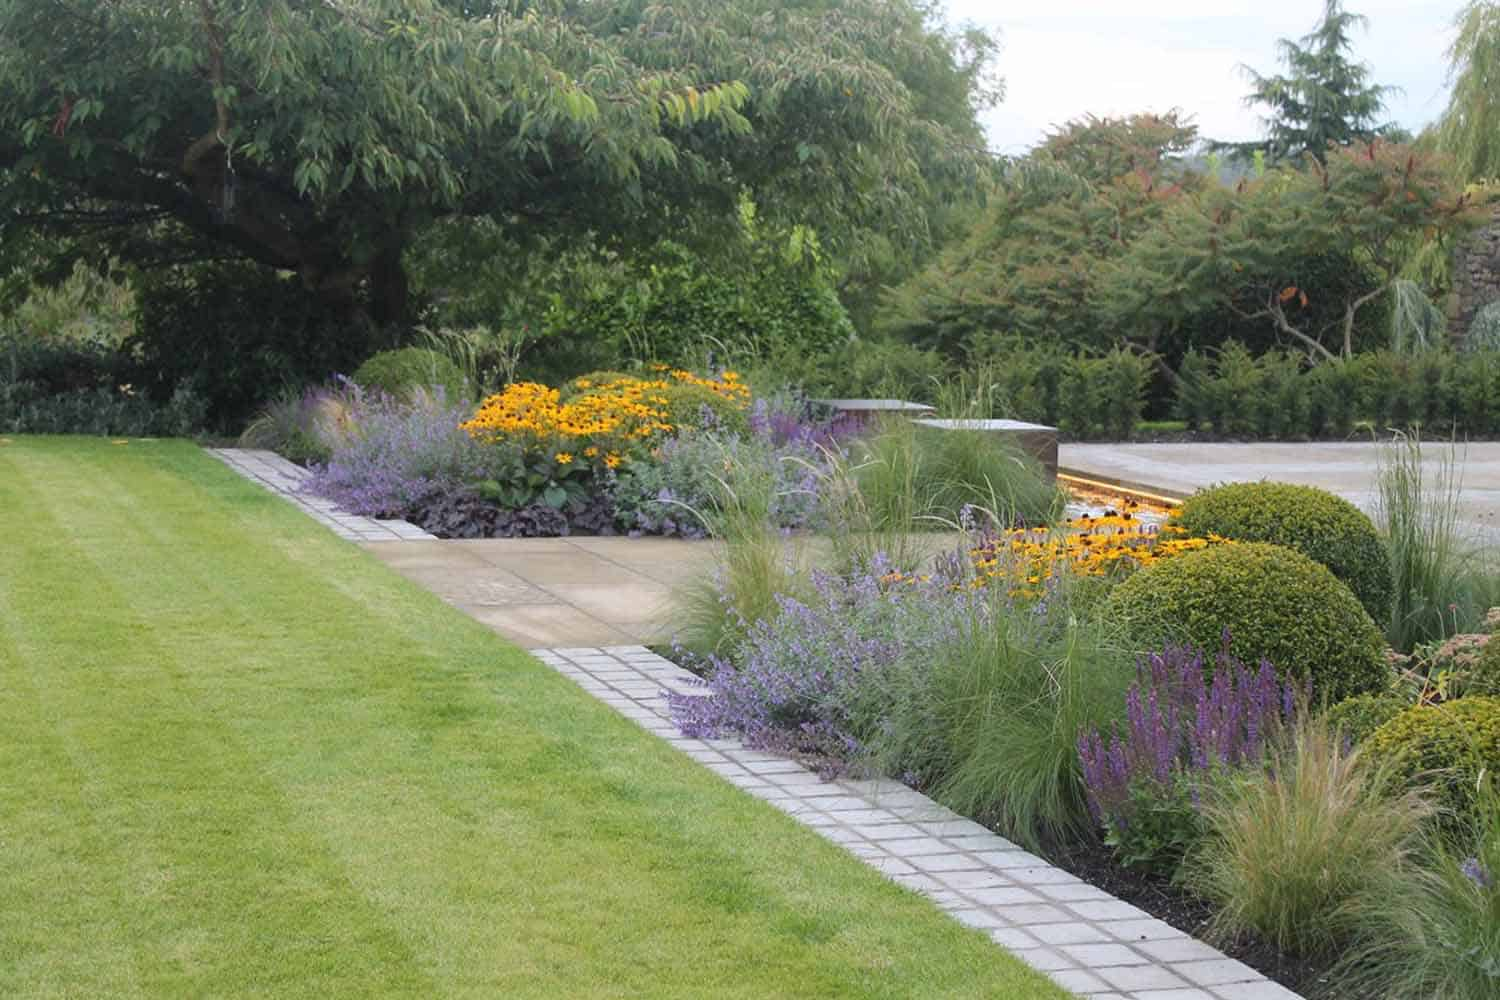 Garden Design Yorkshire rural views, a garden with stilted hedging underplanted with grasses